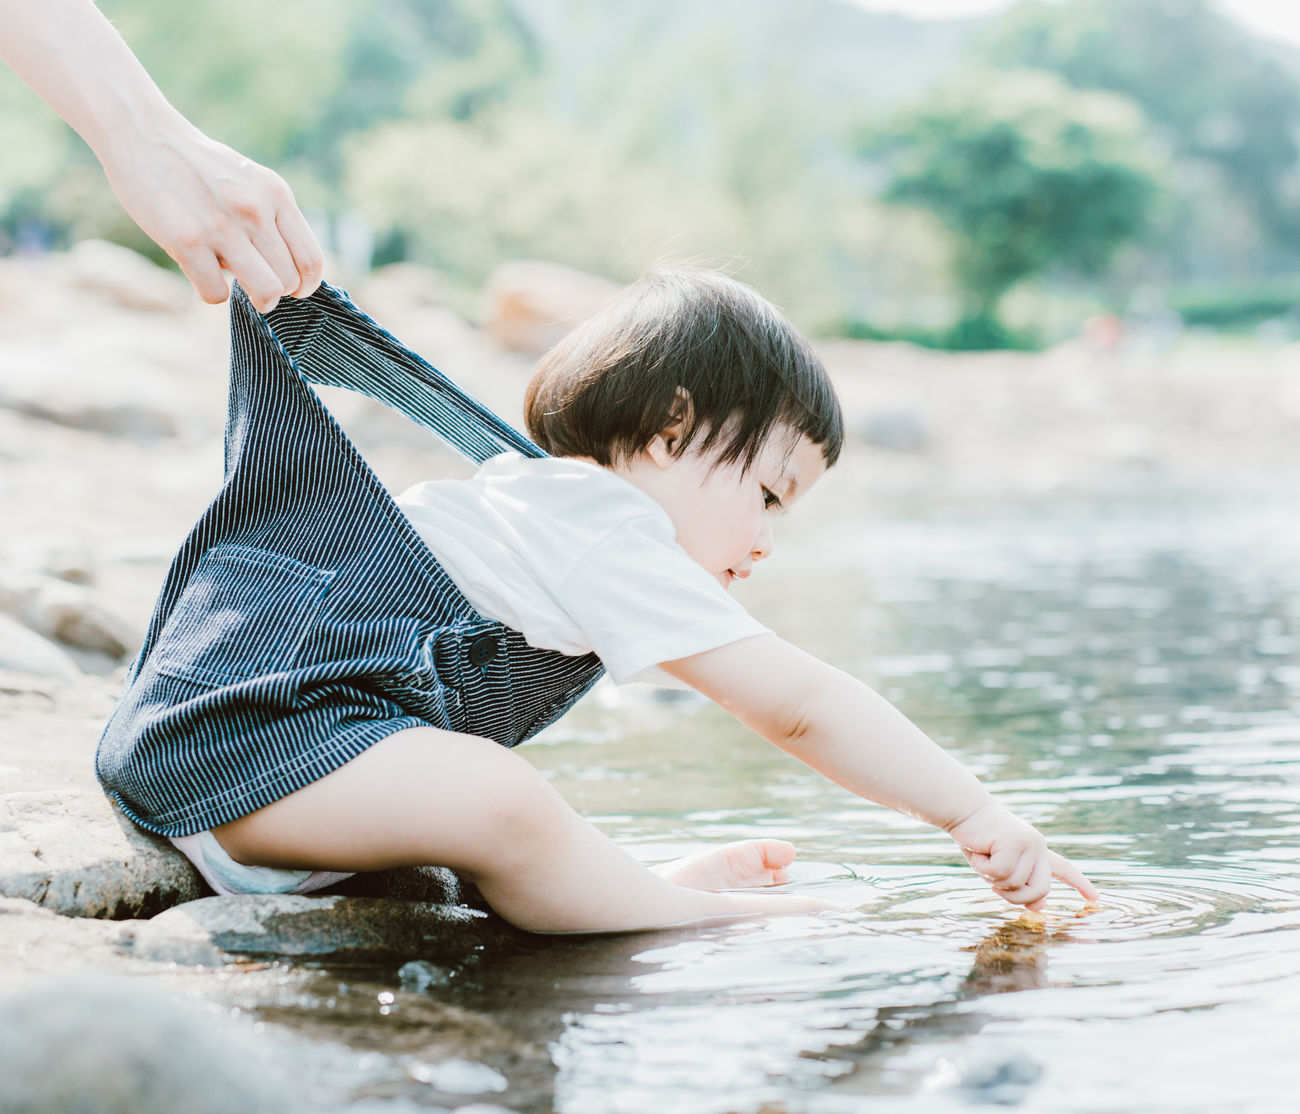 Boys Childhood Day Holding Human Hand Leisure Activity Lifestyles One Person Outdoors Playing Real People Water